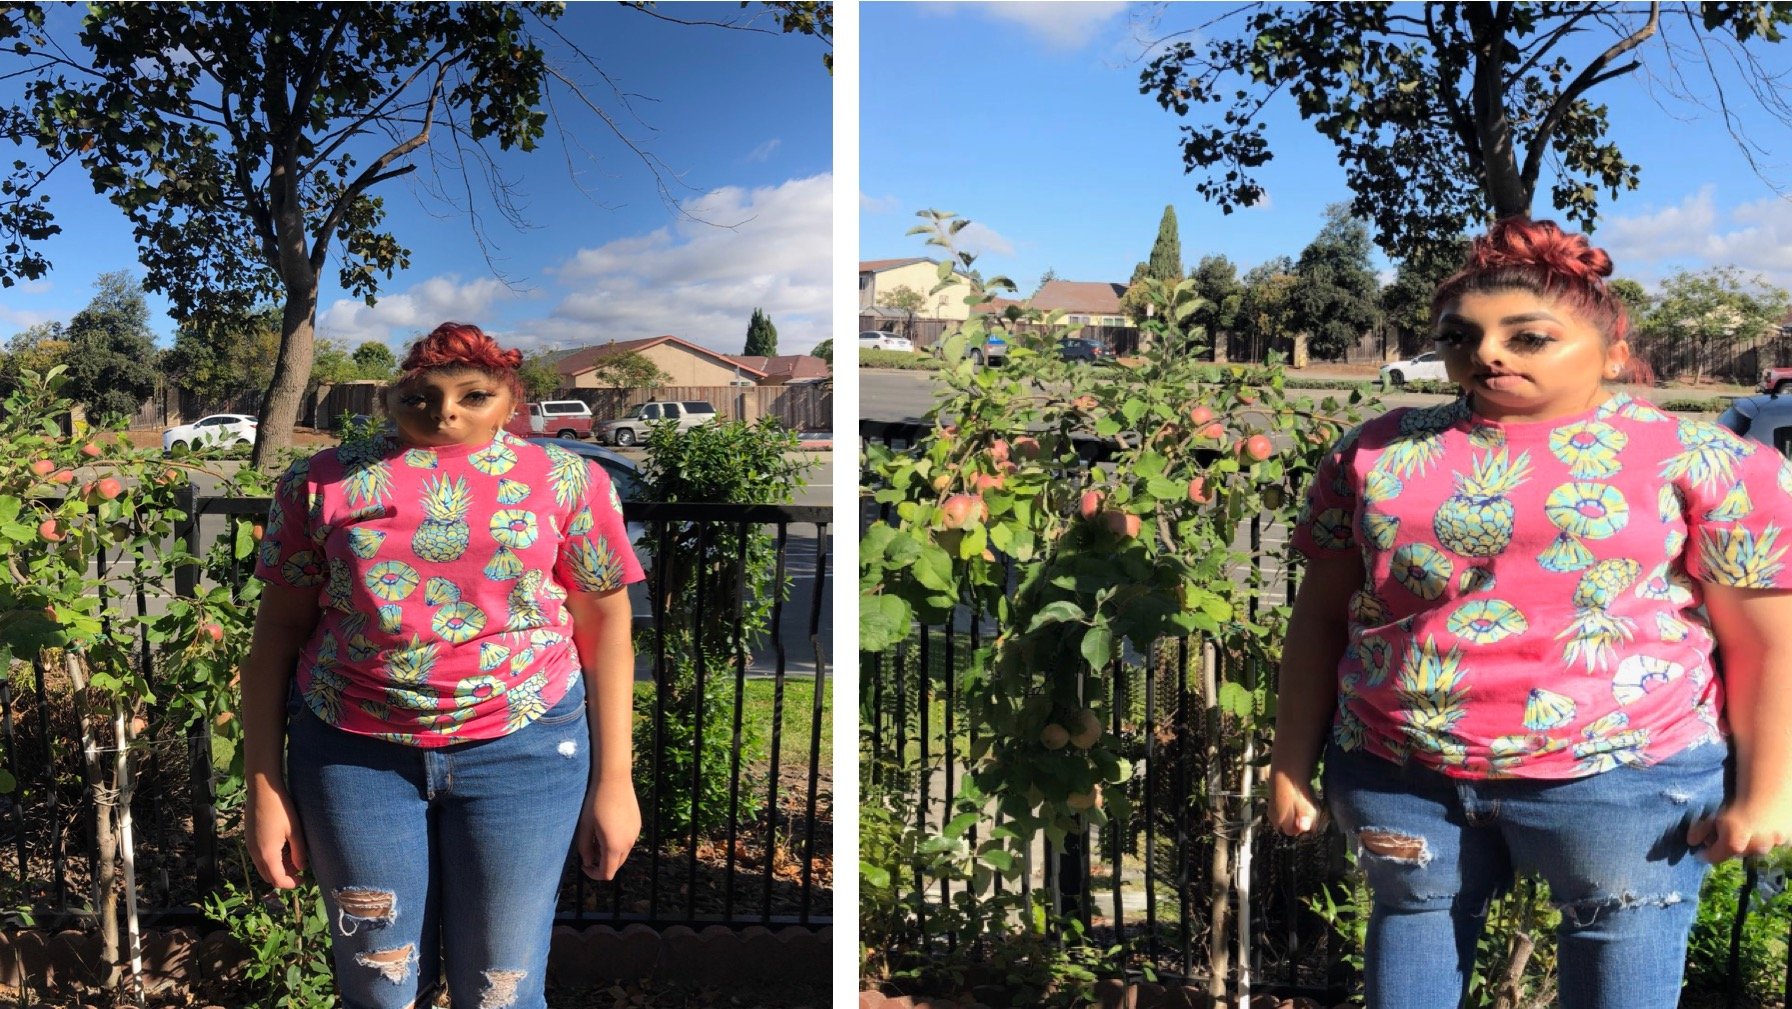 Dad's Panoramic Photo of Daughter Goes Horribly Wrong and Viral